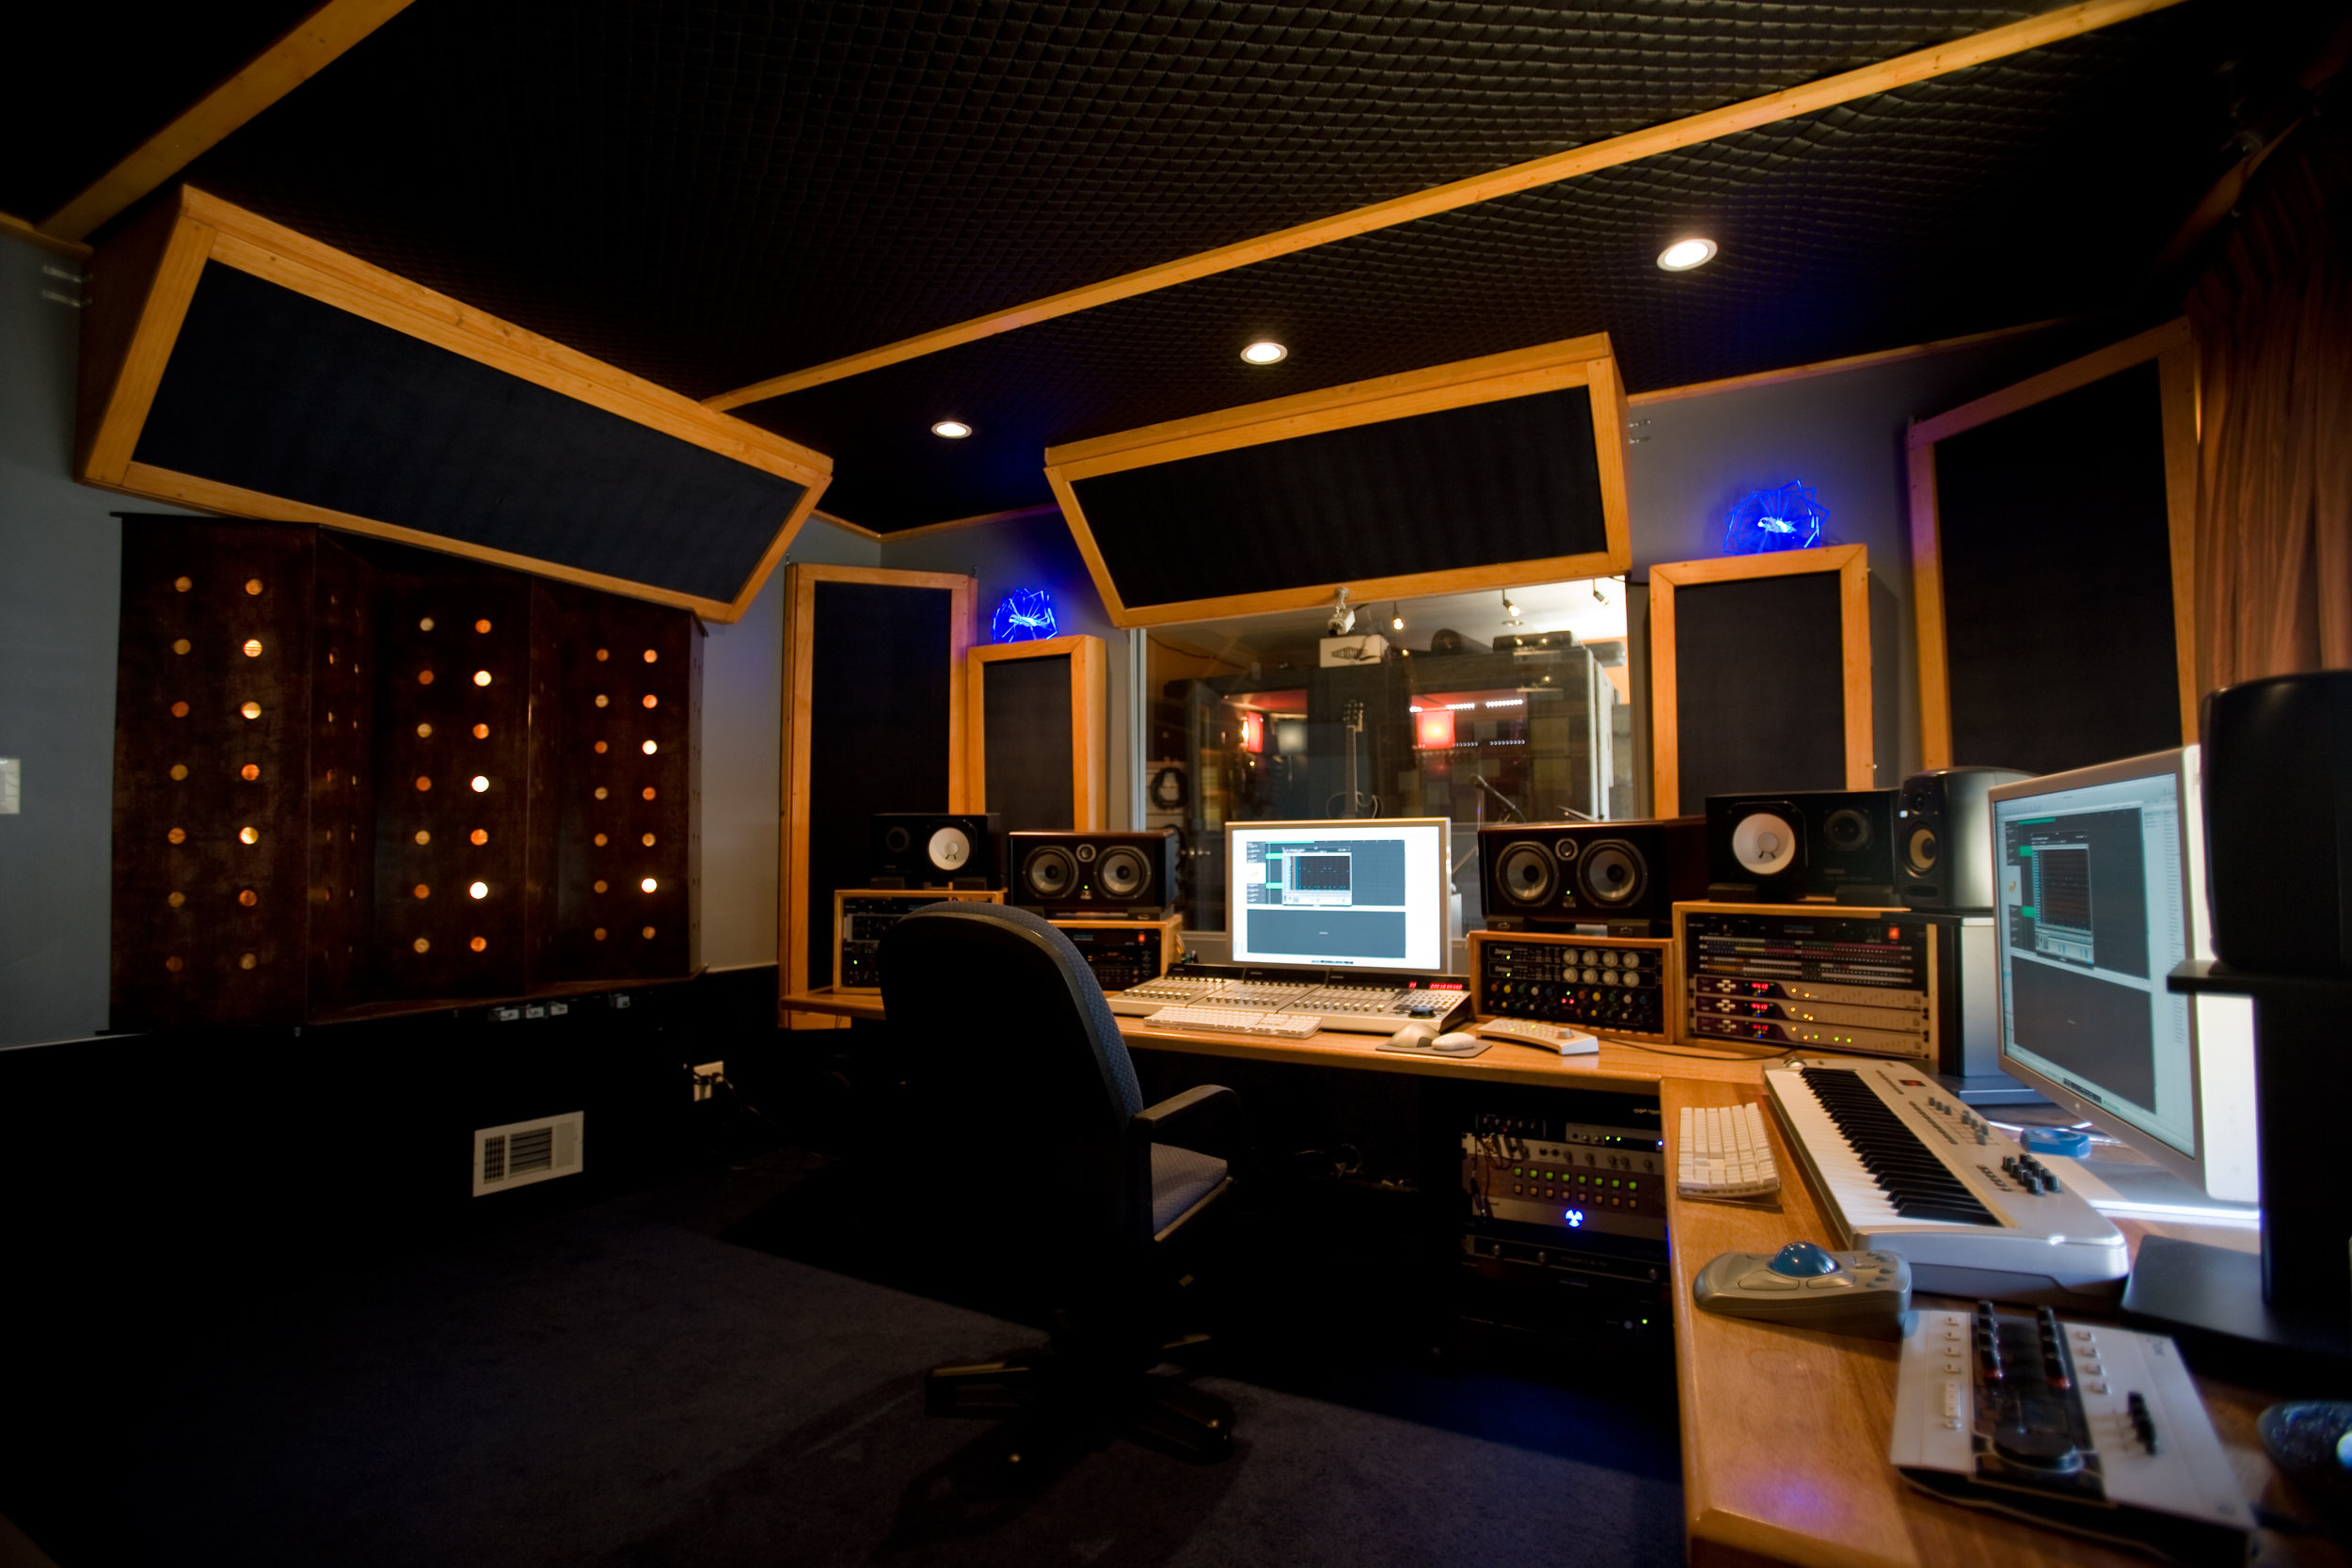 Beta Studios Hollywood - SLH designed and built Beta Records recording facility in Hollywood, California. Upon the projects completion he produced the Temptations album